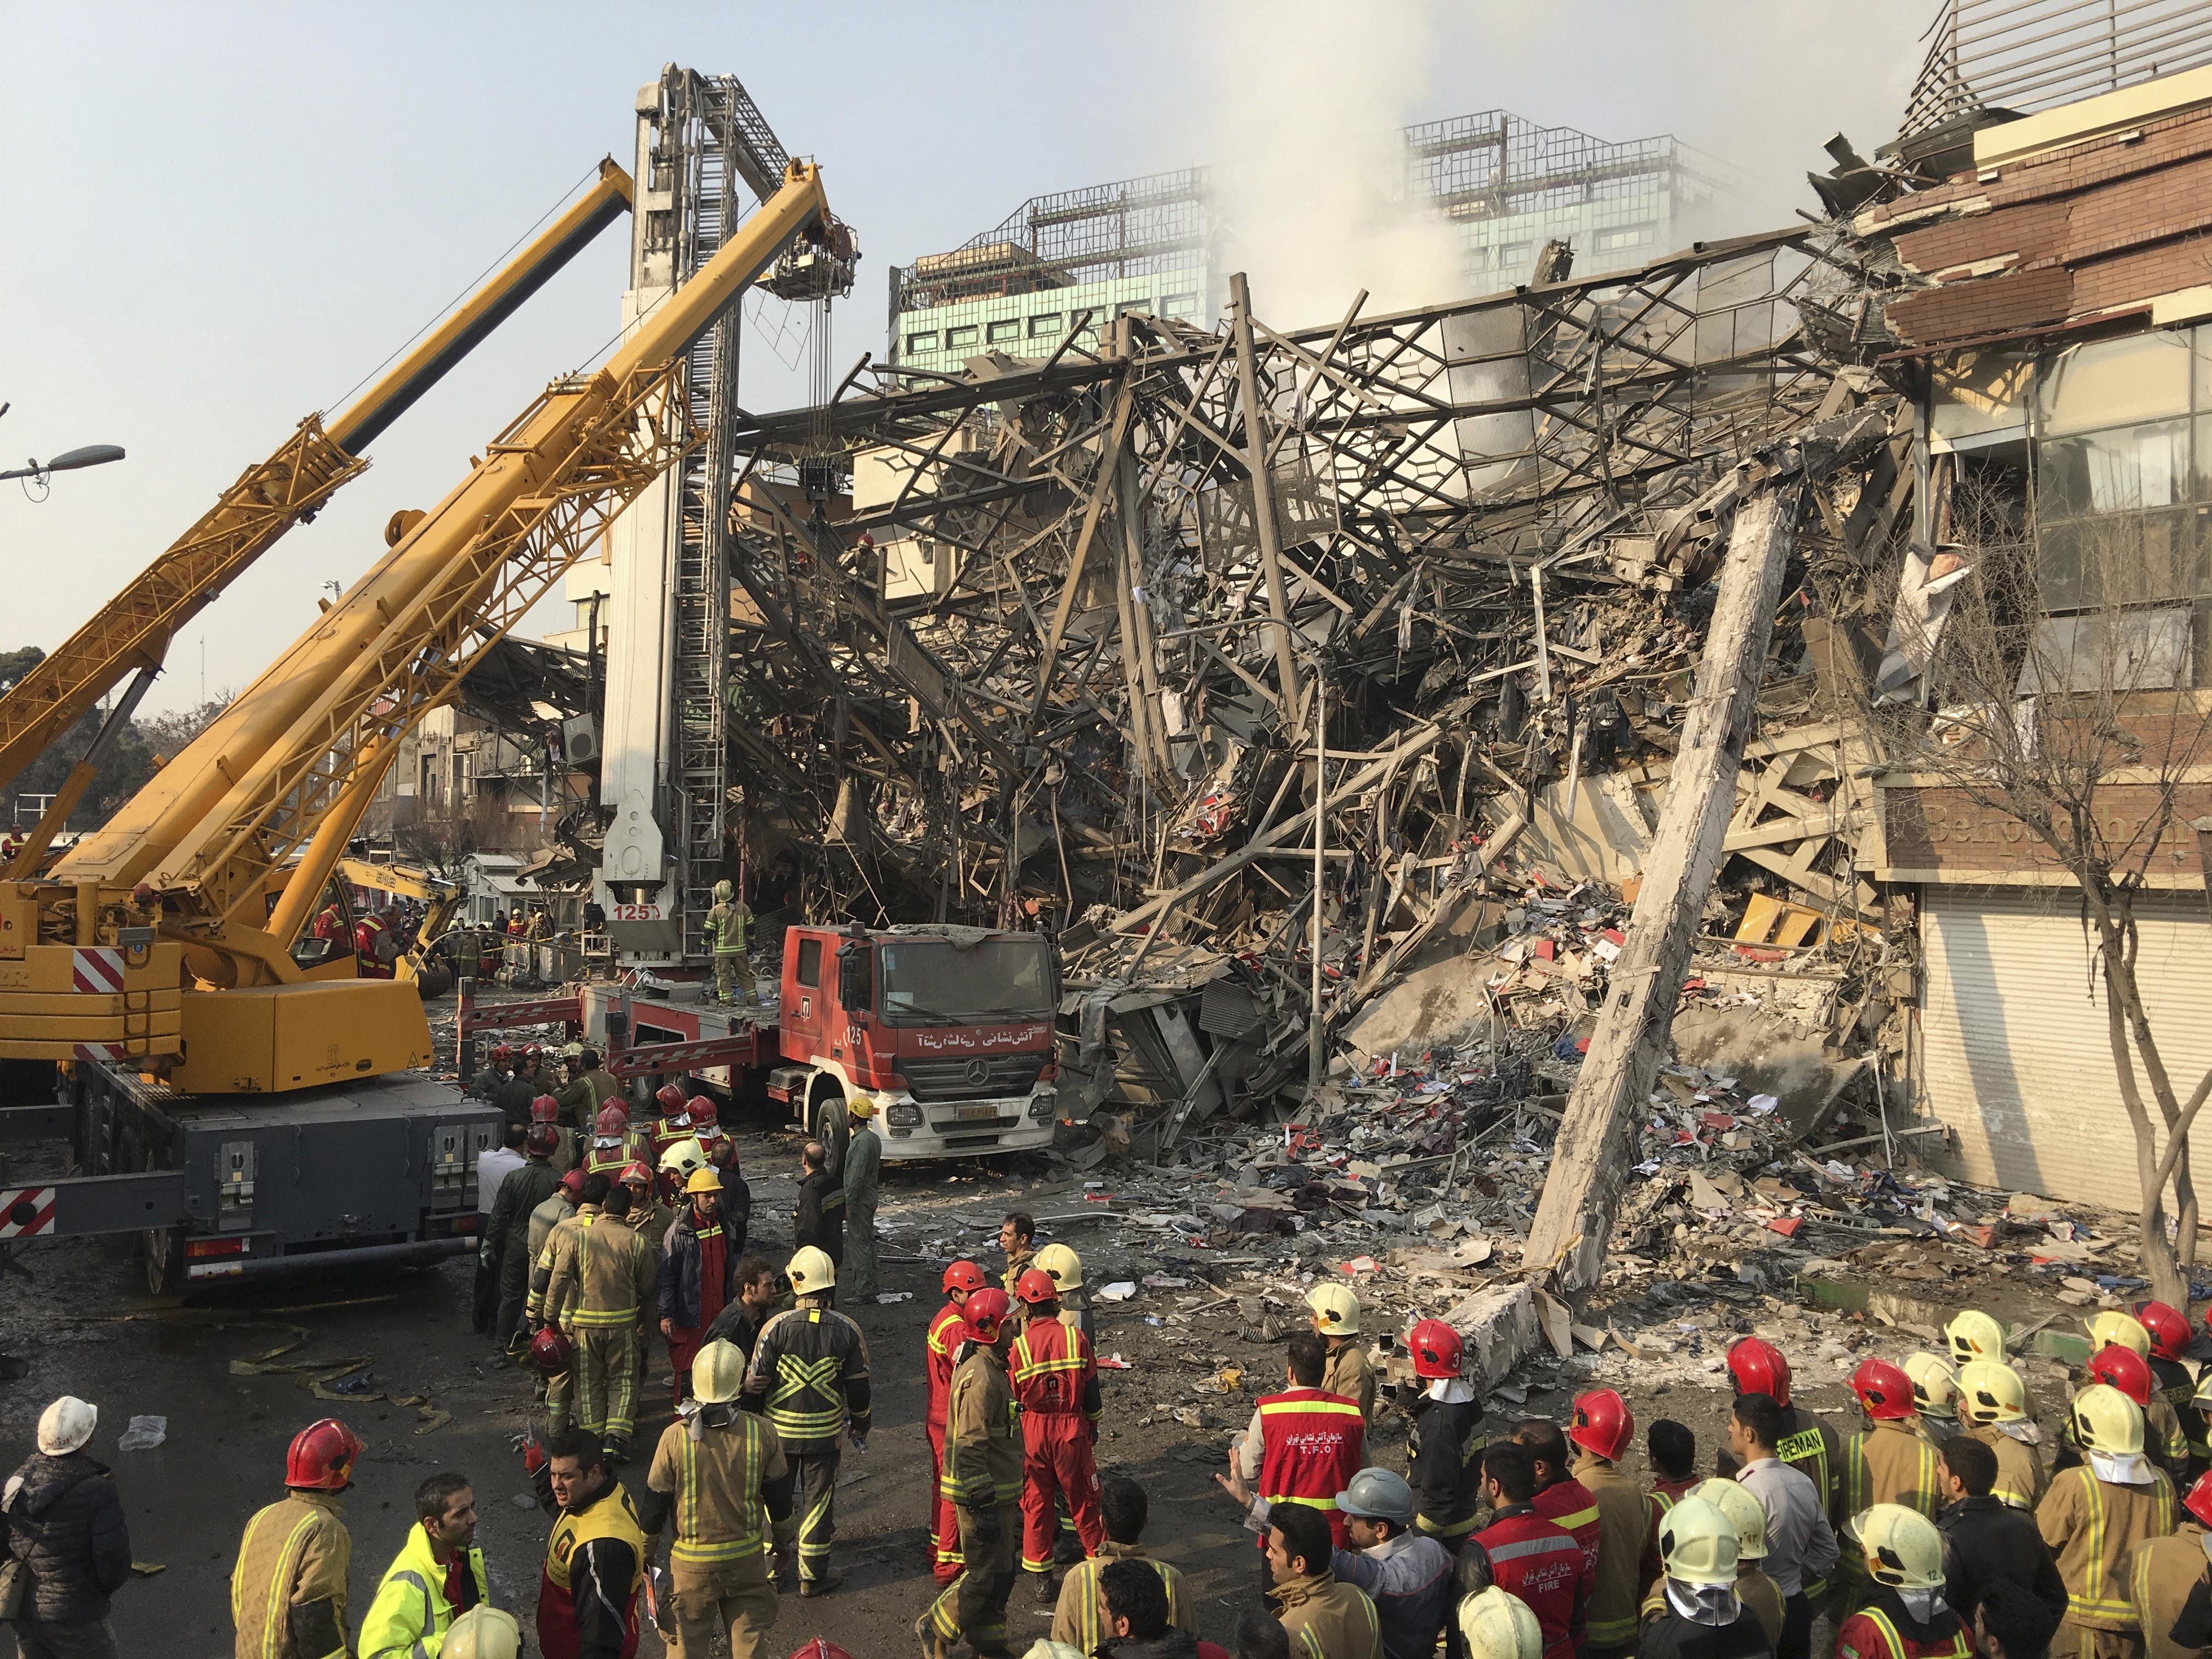 Iranian firefighters work at the scene of the collapsed Plasco building after being engulfed by a fire, in central Tehran, Iran on Jan. 19, 2017. (AP Photo/Ebrahim Noroozi)